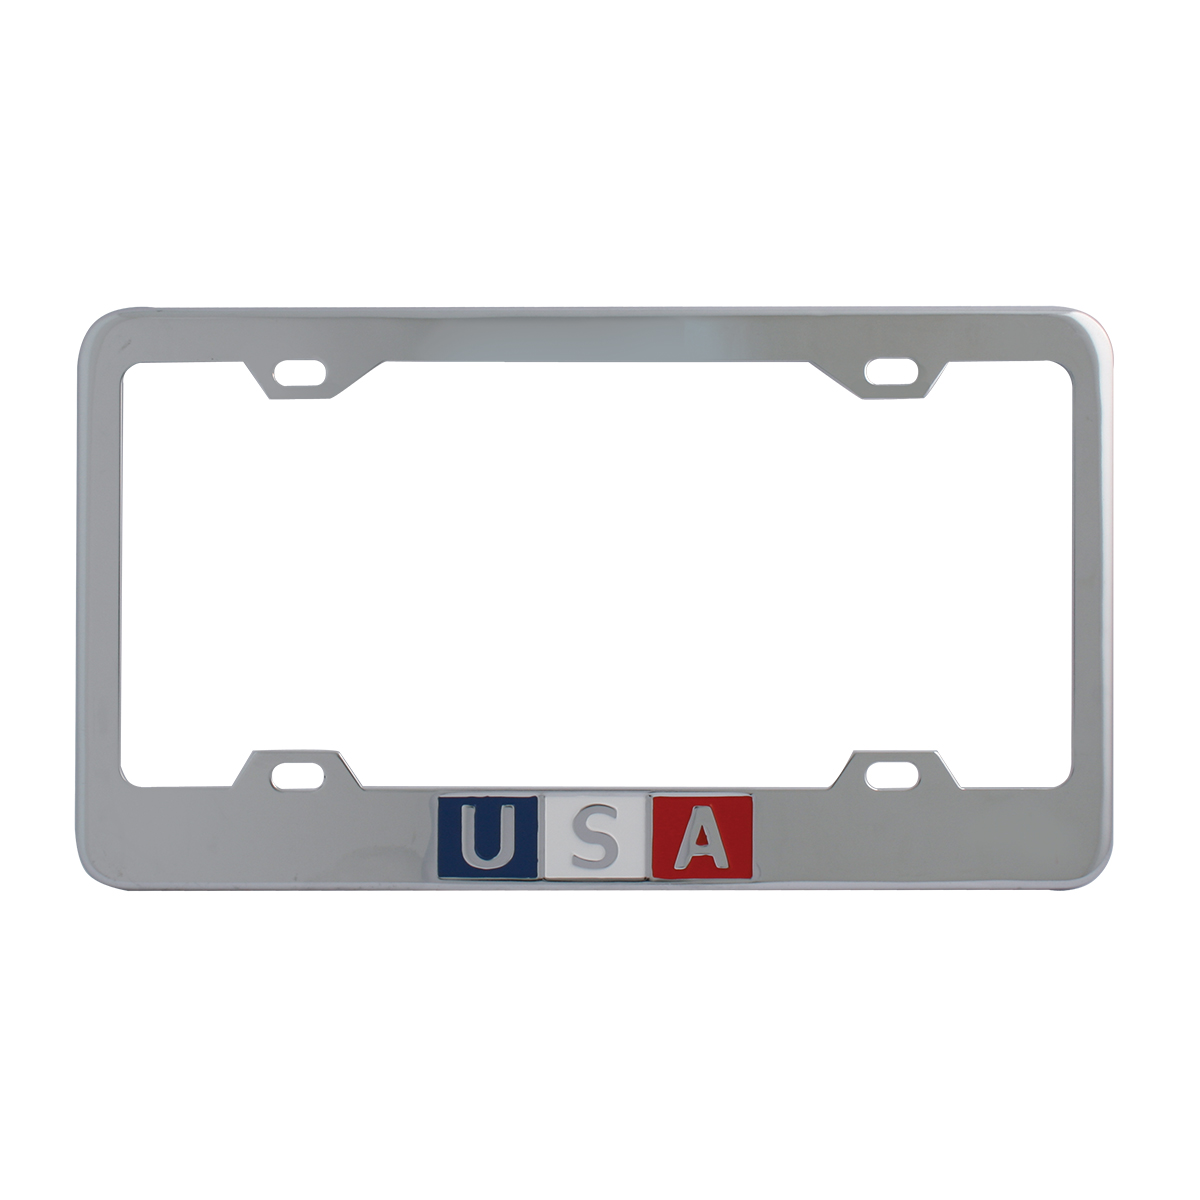 Chrome Plated Steel USA License Plate Frame - 4 Holes